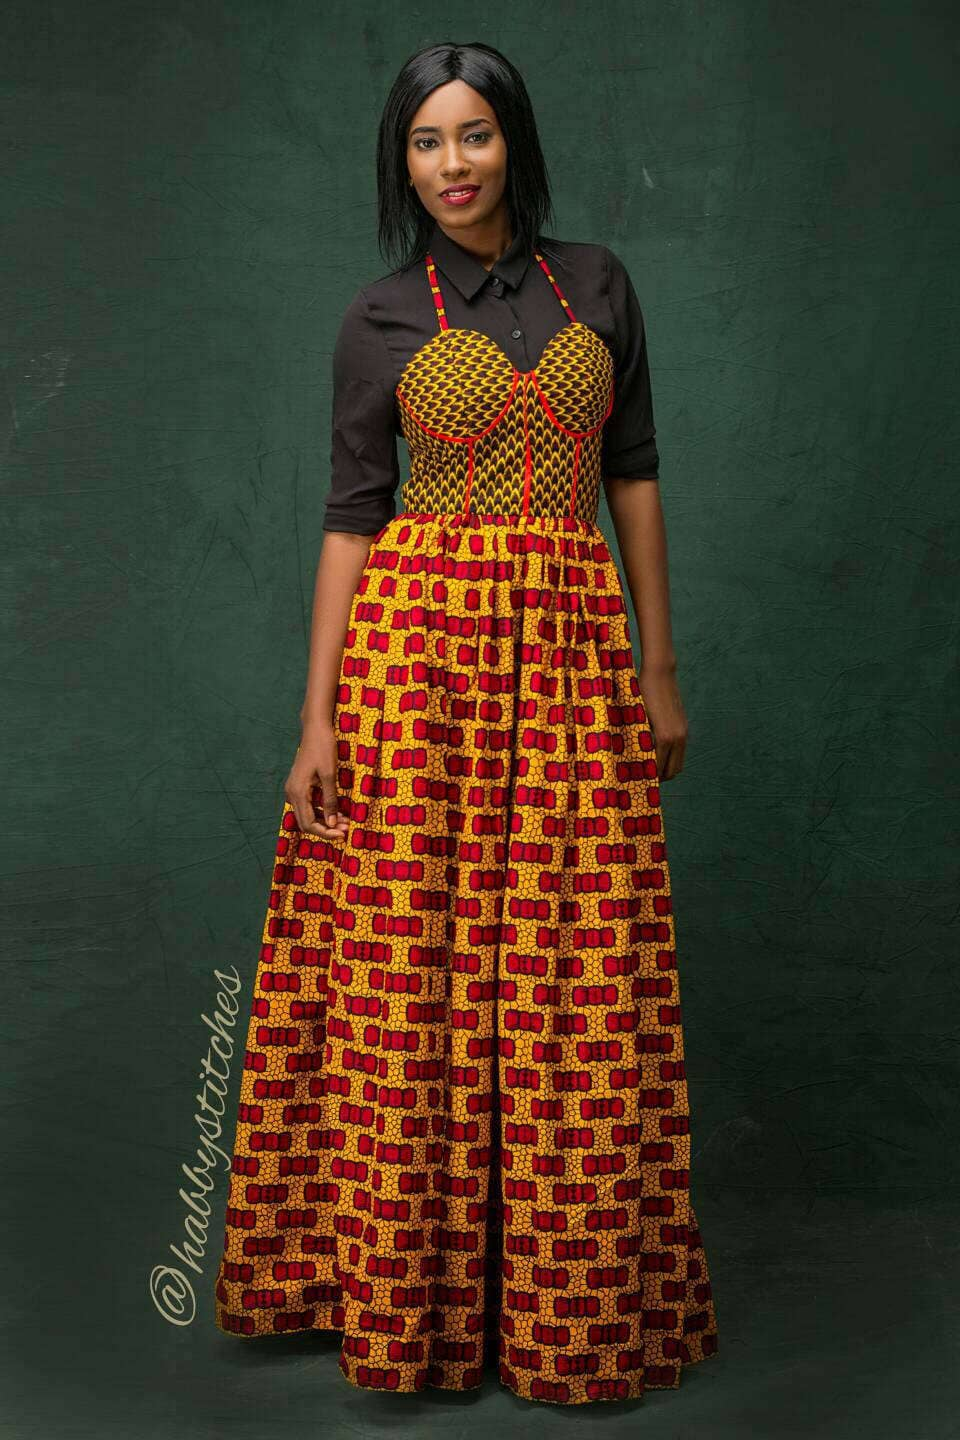 50+ Best African Print Dresses & where to get them